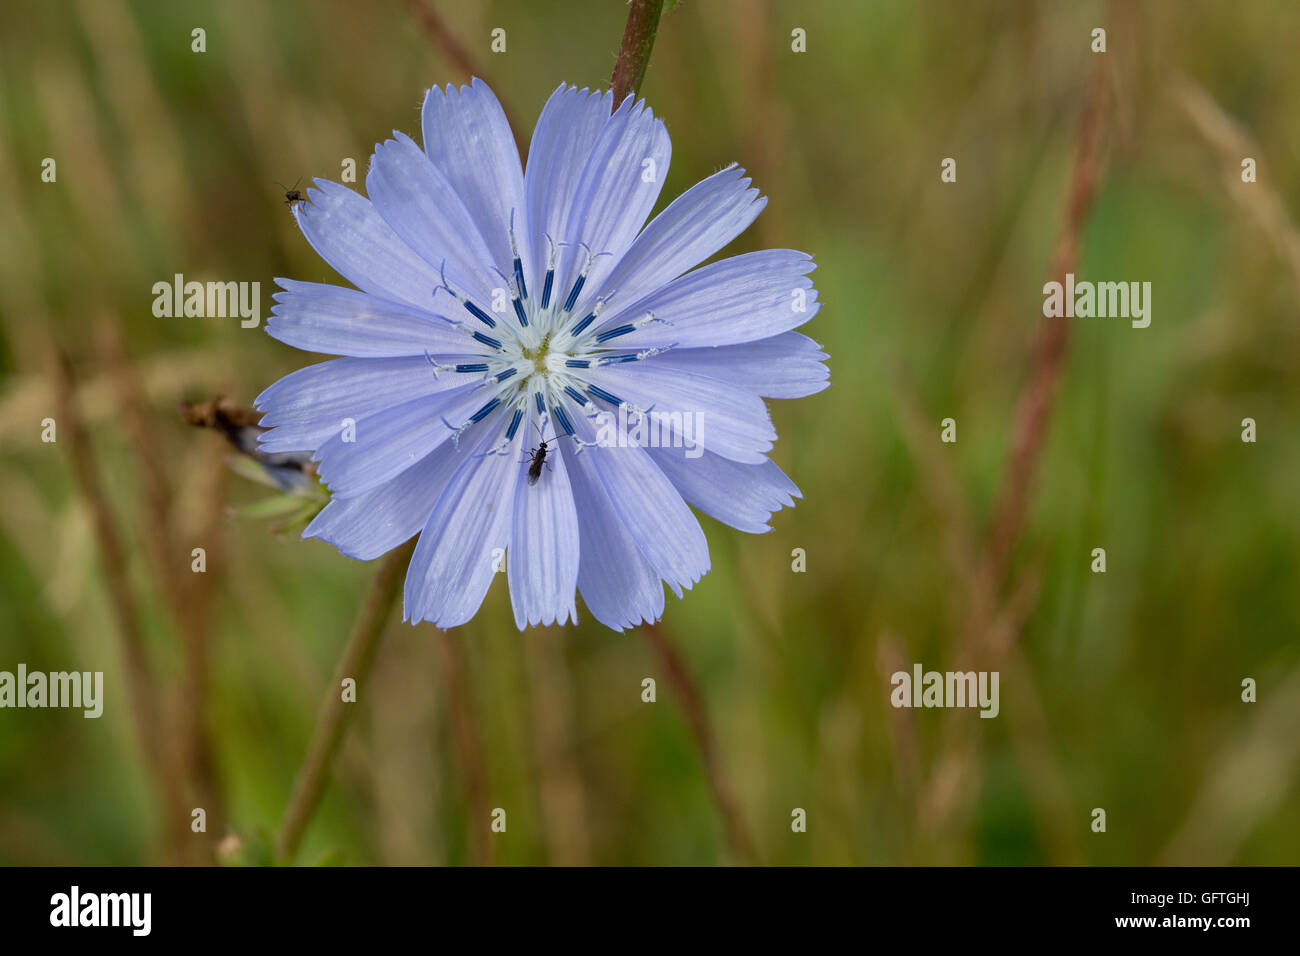 Blue flower head of chickory Cichorium intybus insect friendly edible wild food Cotswolds UK - Stock Image